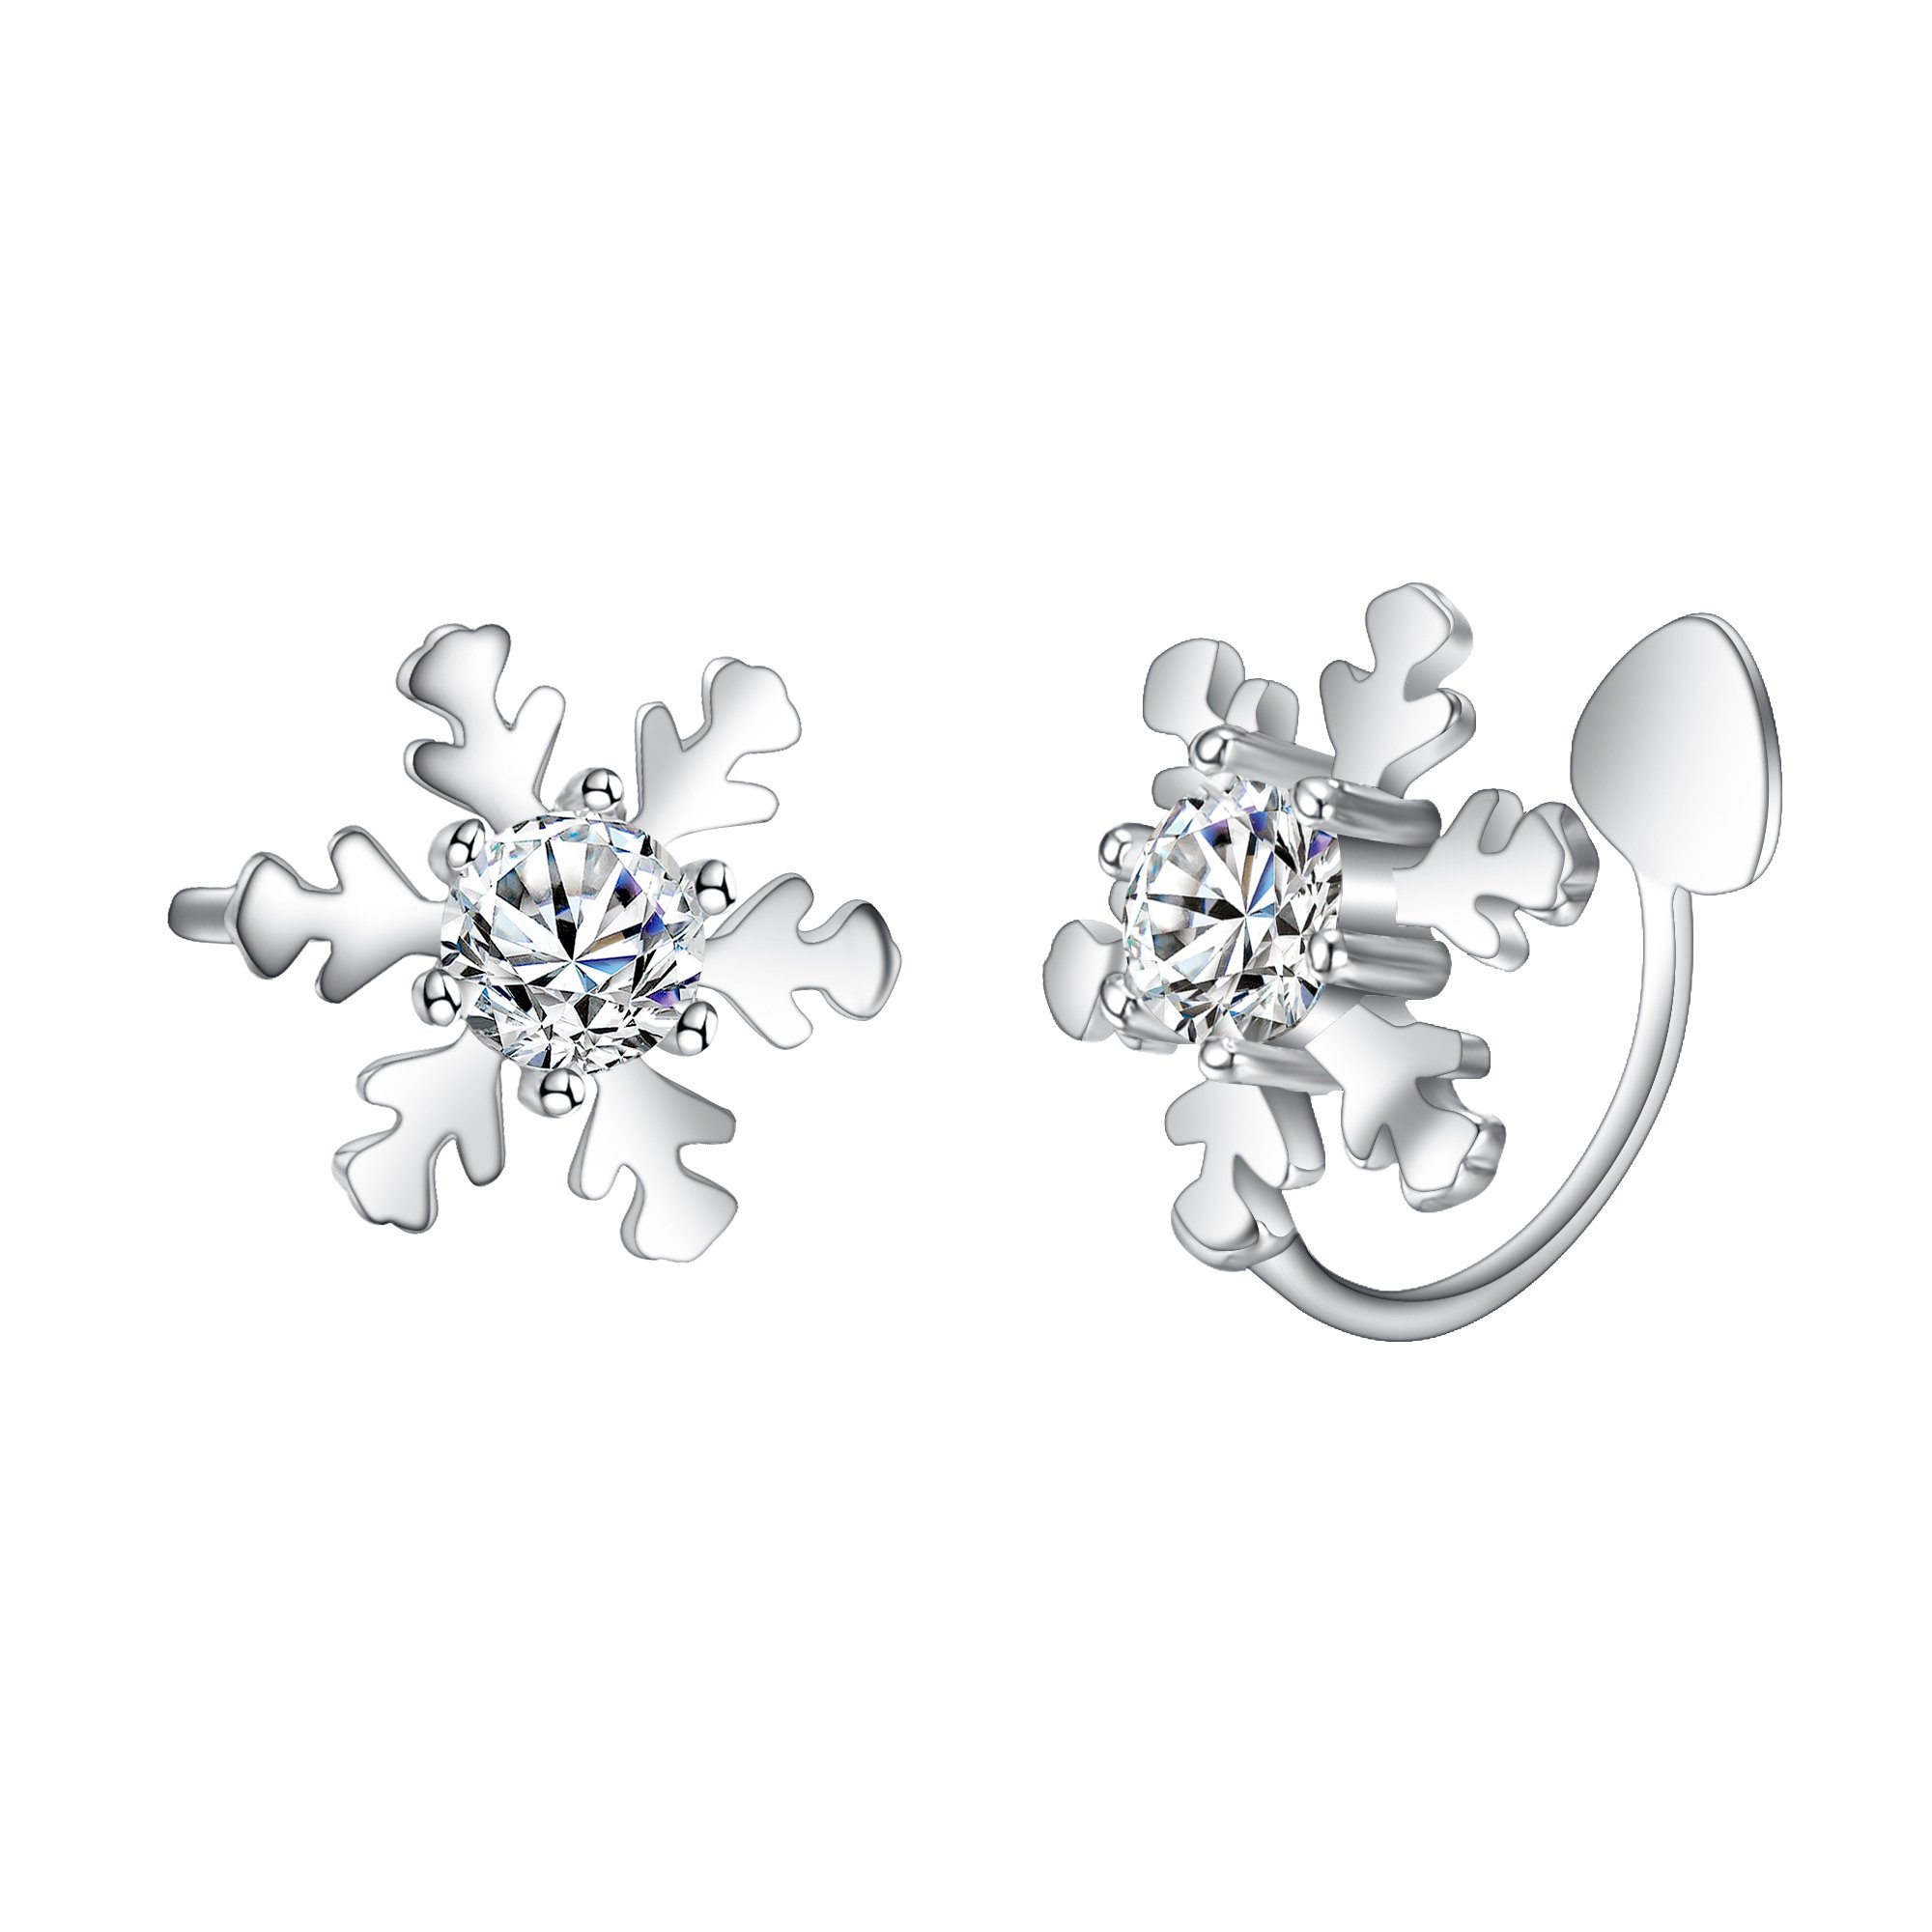 EleQueen 925 Sterling Silver CZ Winter Snowflake Ear Crawlers Sweep Wrap Cuff Bridal Clip-on Earrings Clear 1 Pair